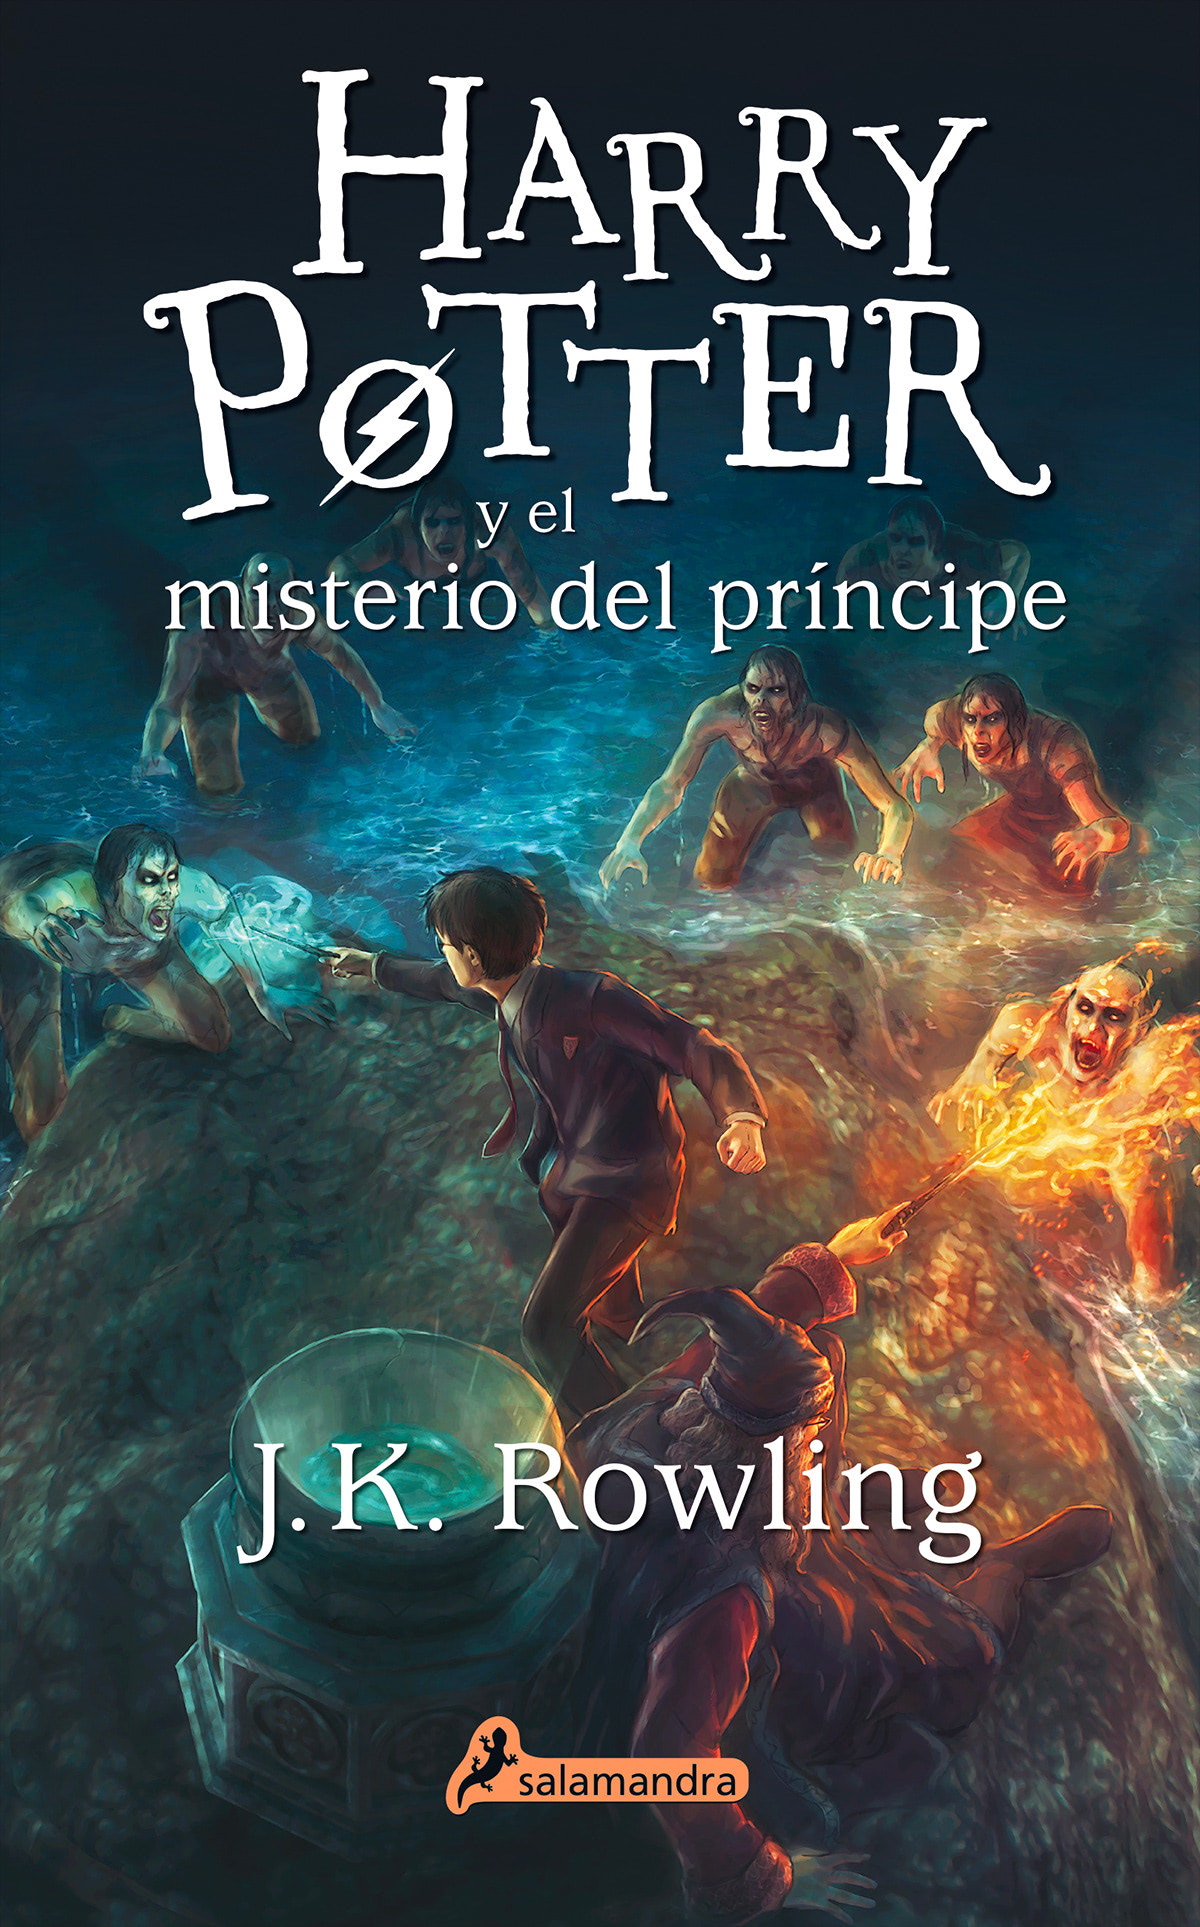 'Half-Blood Prince' Spanish anniversary edition